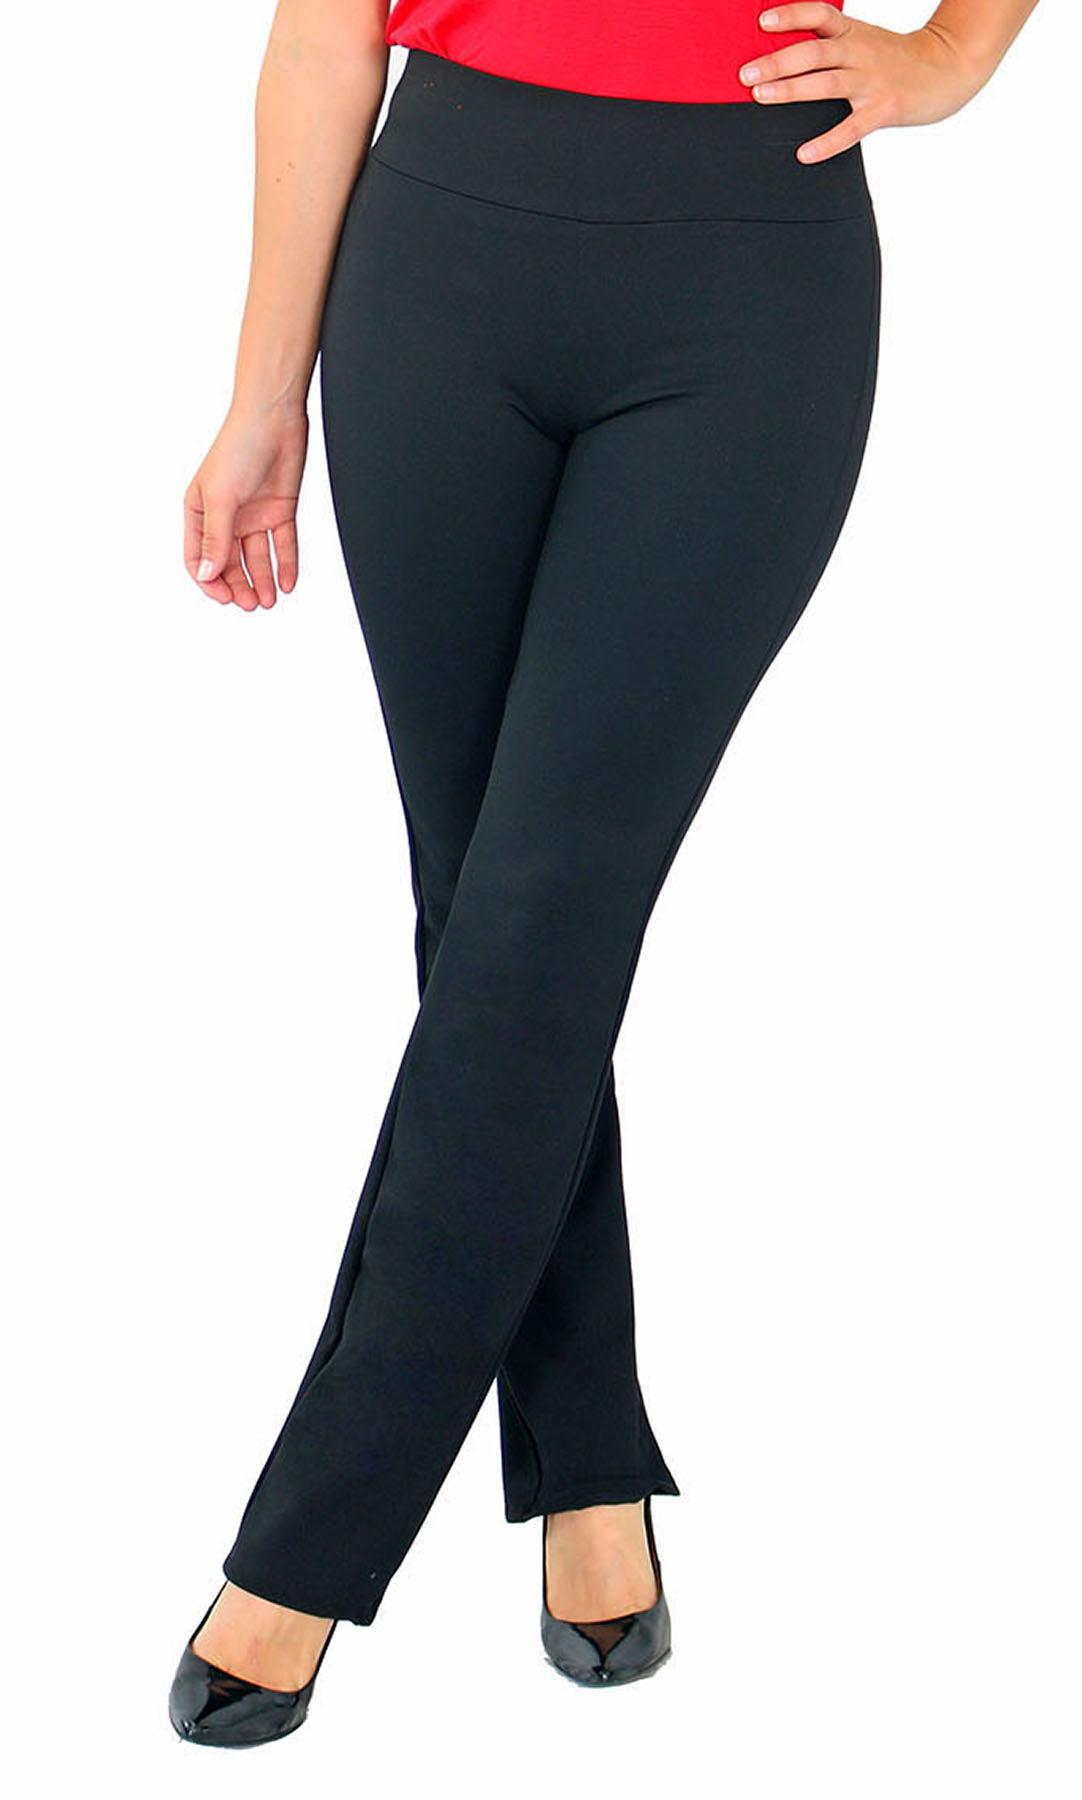 TrueSlim™ Black Ponte Leggings For women